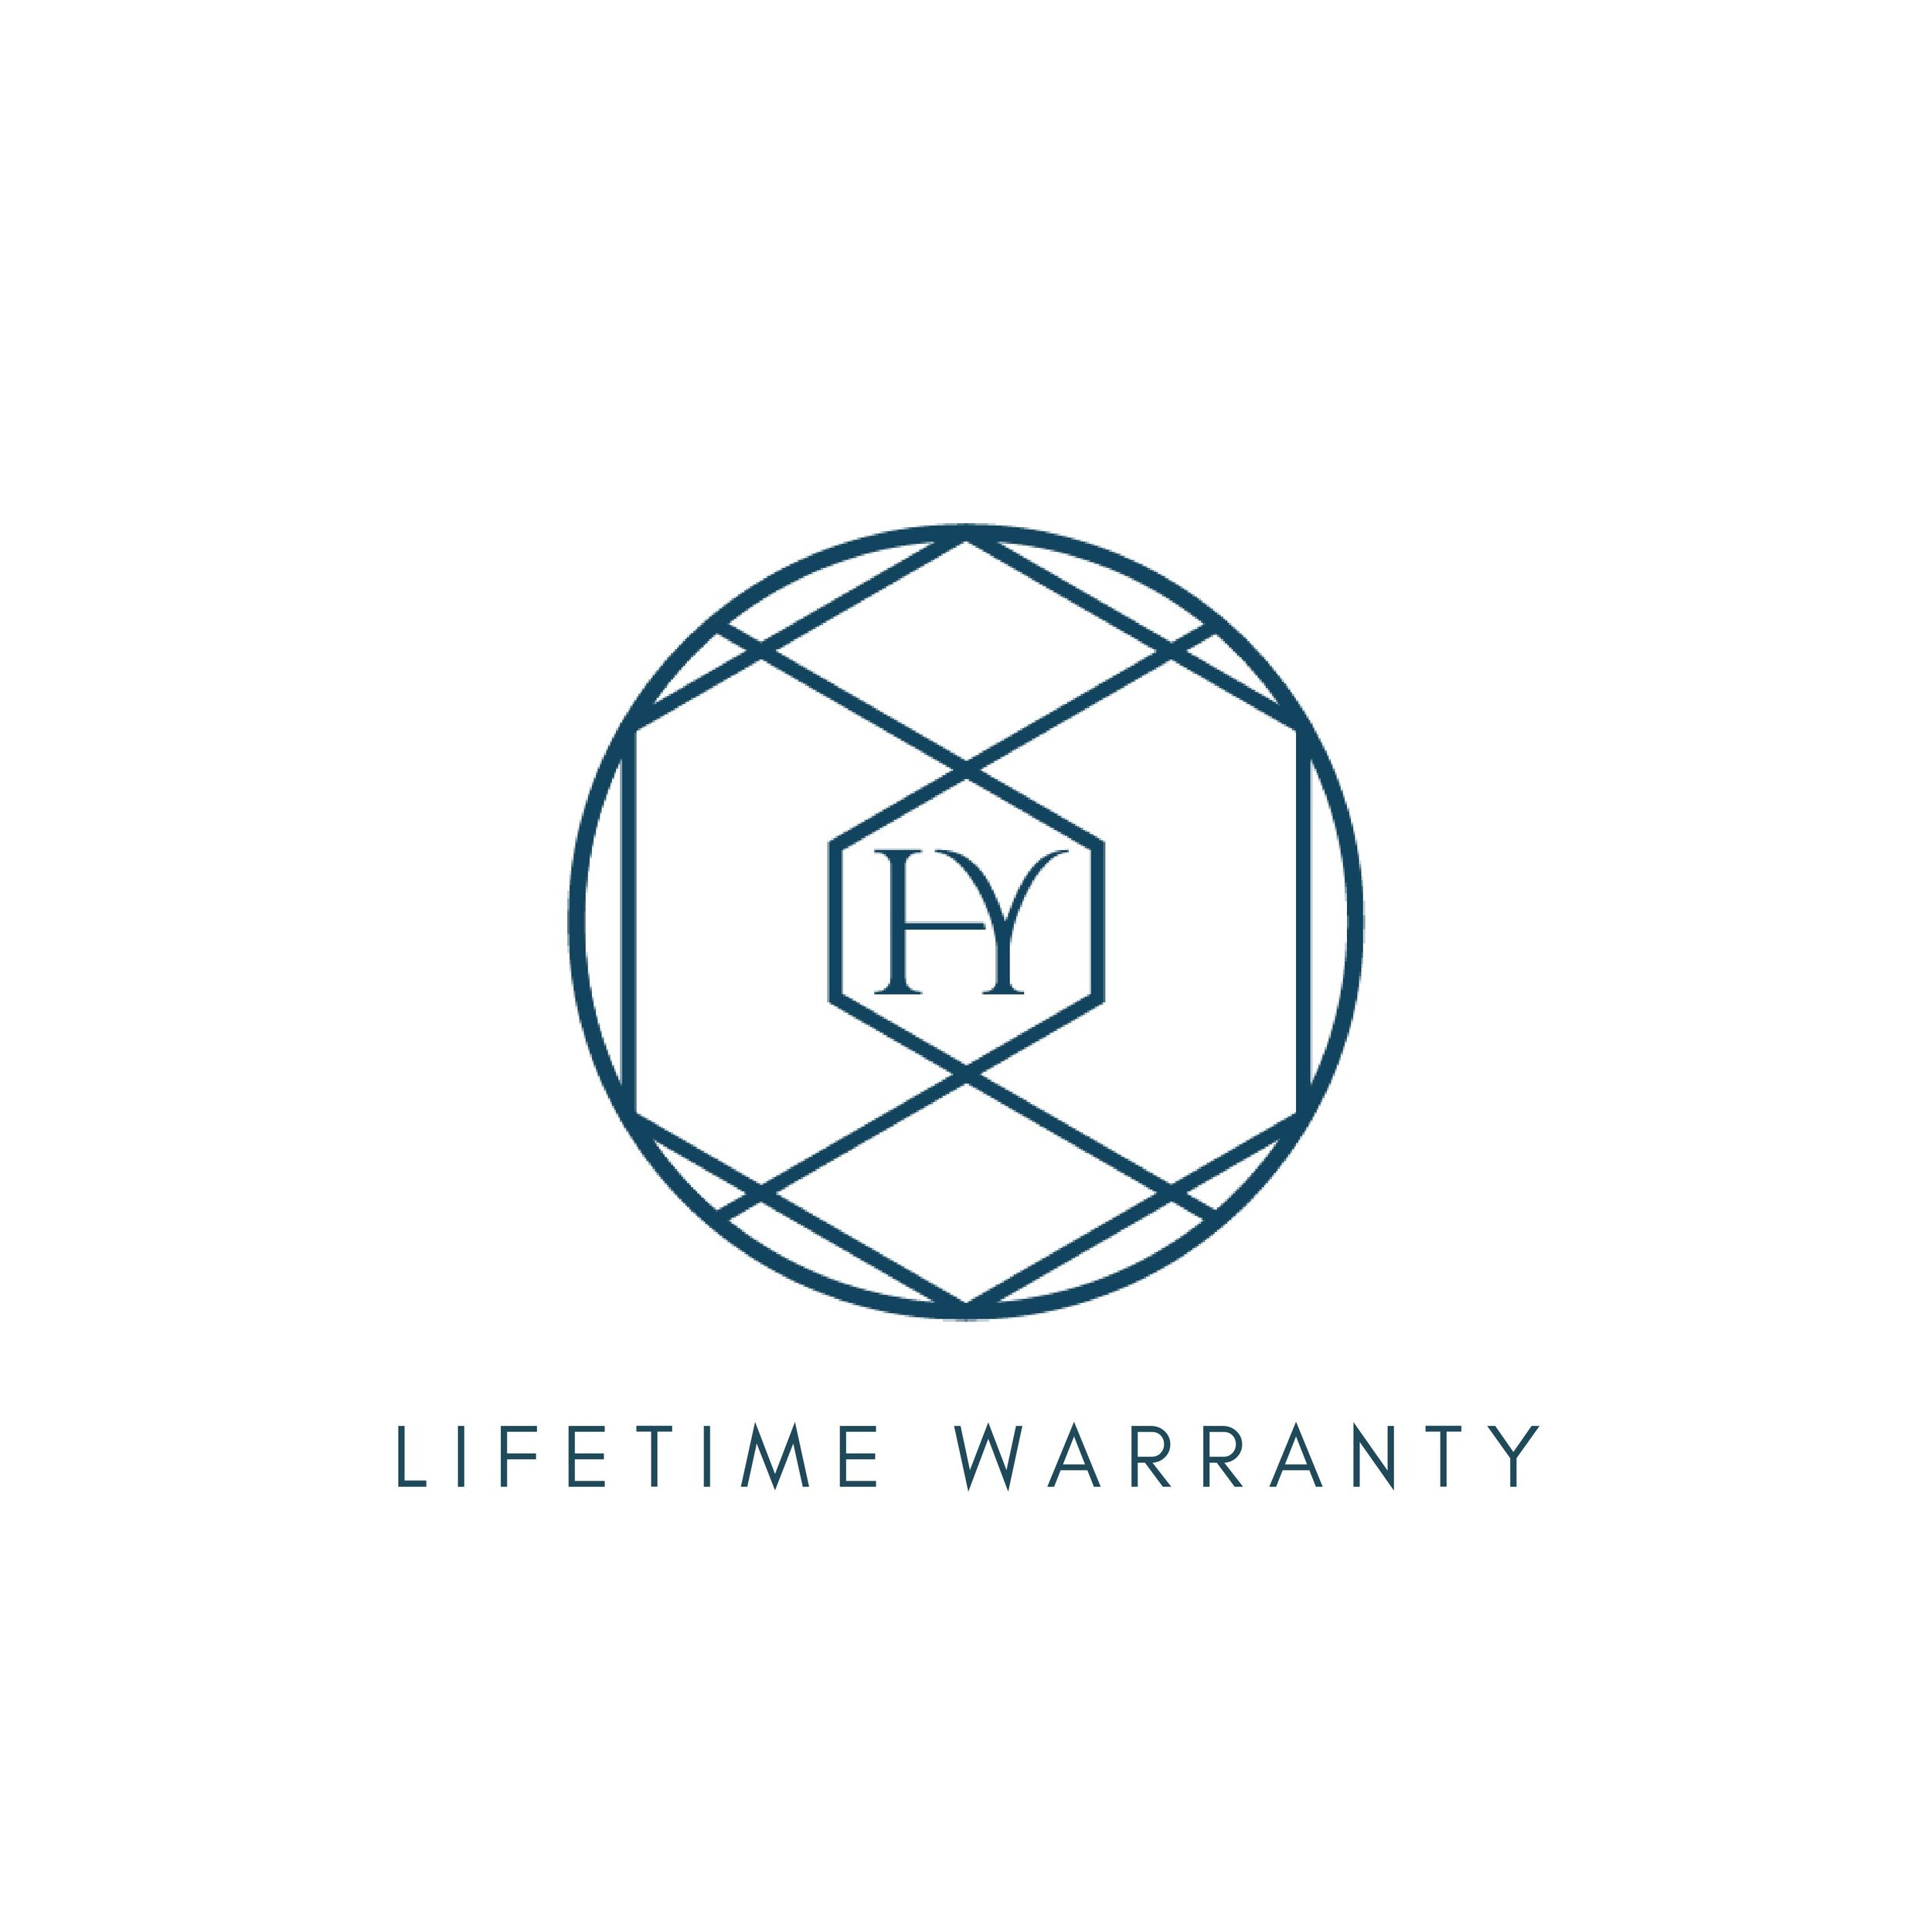 Lifetime Warranty - At Humaiyra we take pride in the quality of our products and are confident in the quality of each piece. Whether it is your wedding band, engagement ring or any other piece of jewellery from our curated collections, we make all our jewellery fit to last you a lifetime and beyond, ready to pass down to generations to come. All our pieces are individually crafted by master craftsmen and each piece is inspected meticulously after completion to ensure it meets our standards and your expectations. With this high level of workmanship behind us we back our products against any manufacturing defects.